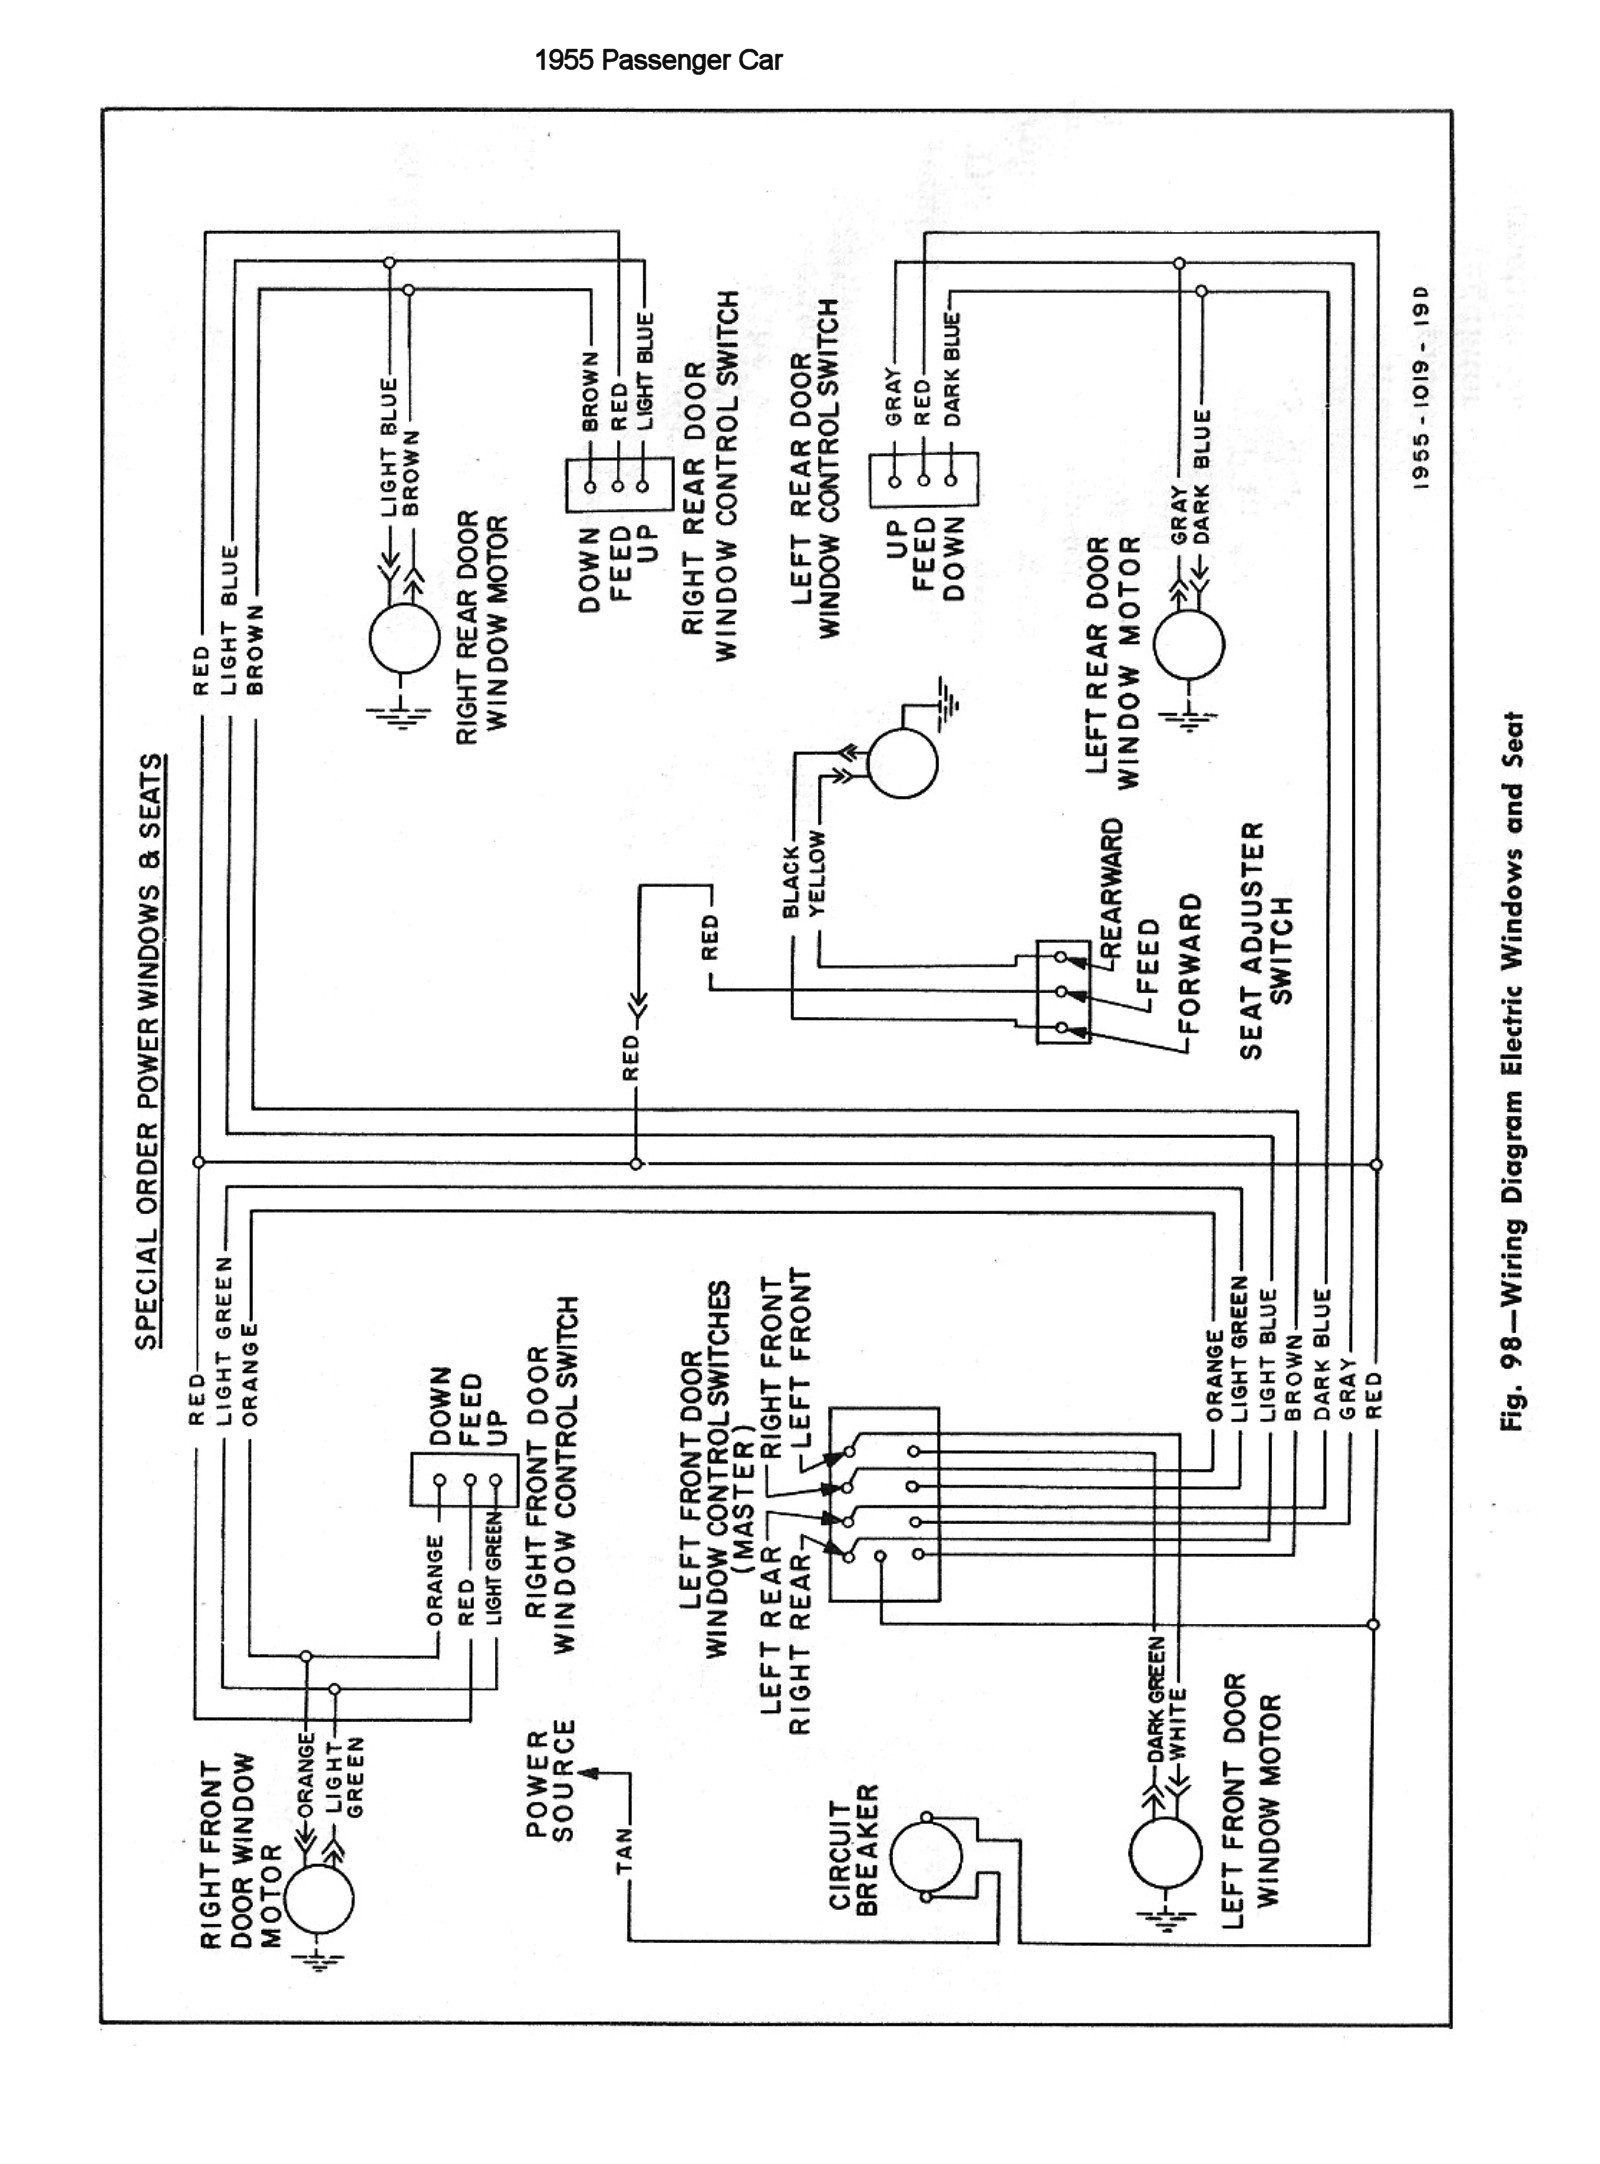 1955 chevy turn signal wiring diagram wiringdiagram org rh pinterest com chevy turn signal wiring diagram 1982 truck turn signal wiring diagram for chevy